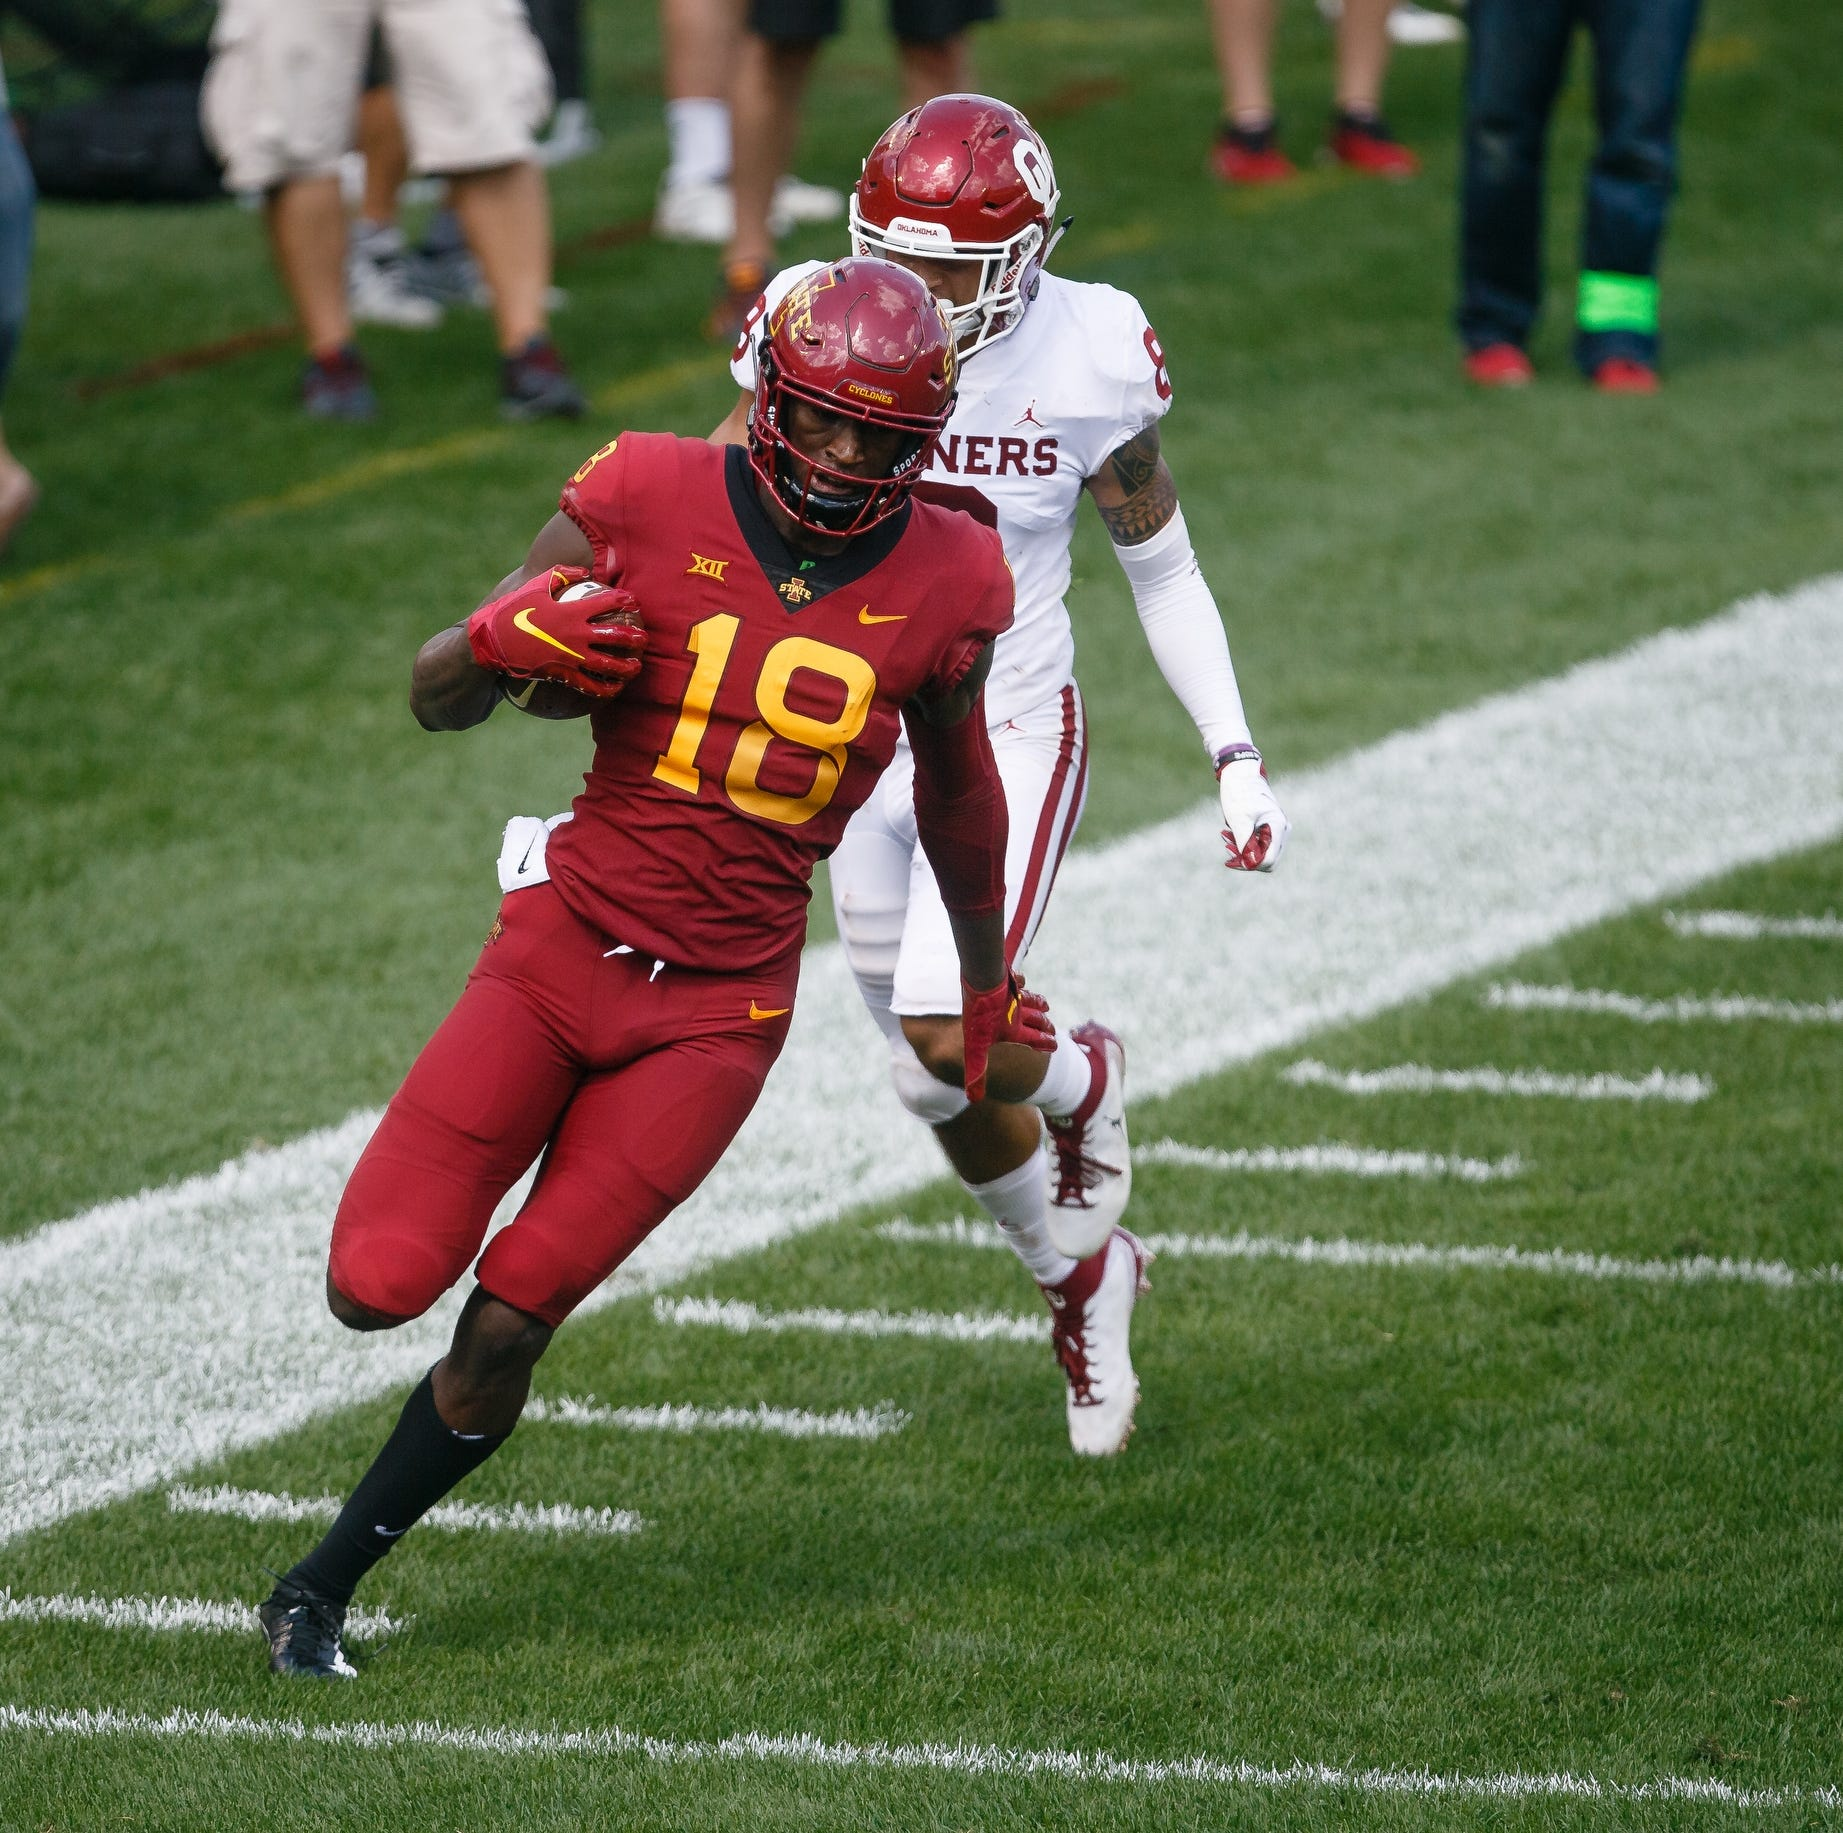 Iowa State football: Live updates on Cyclones vs. Akron